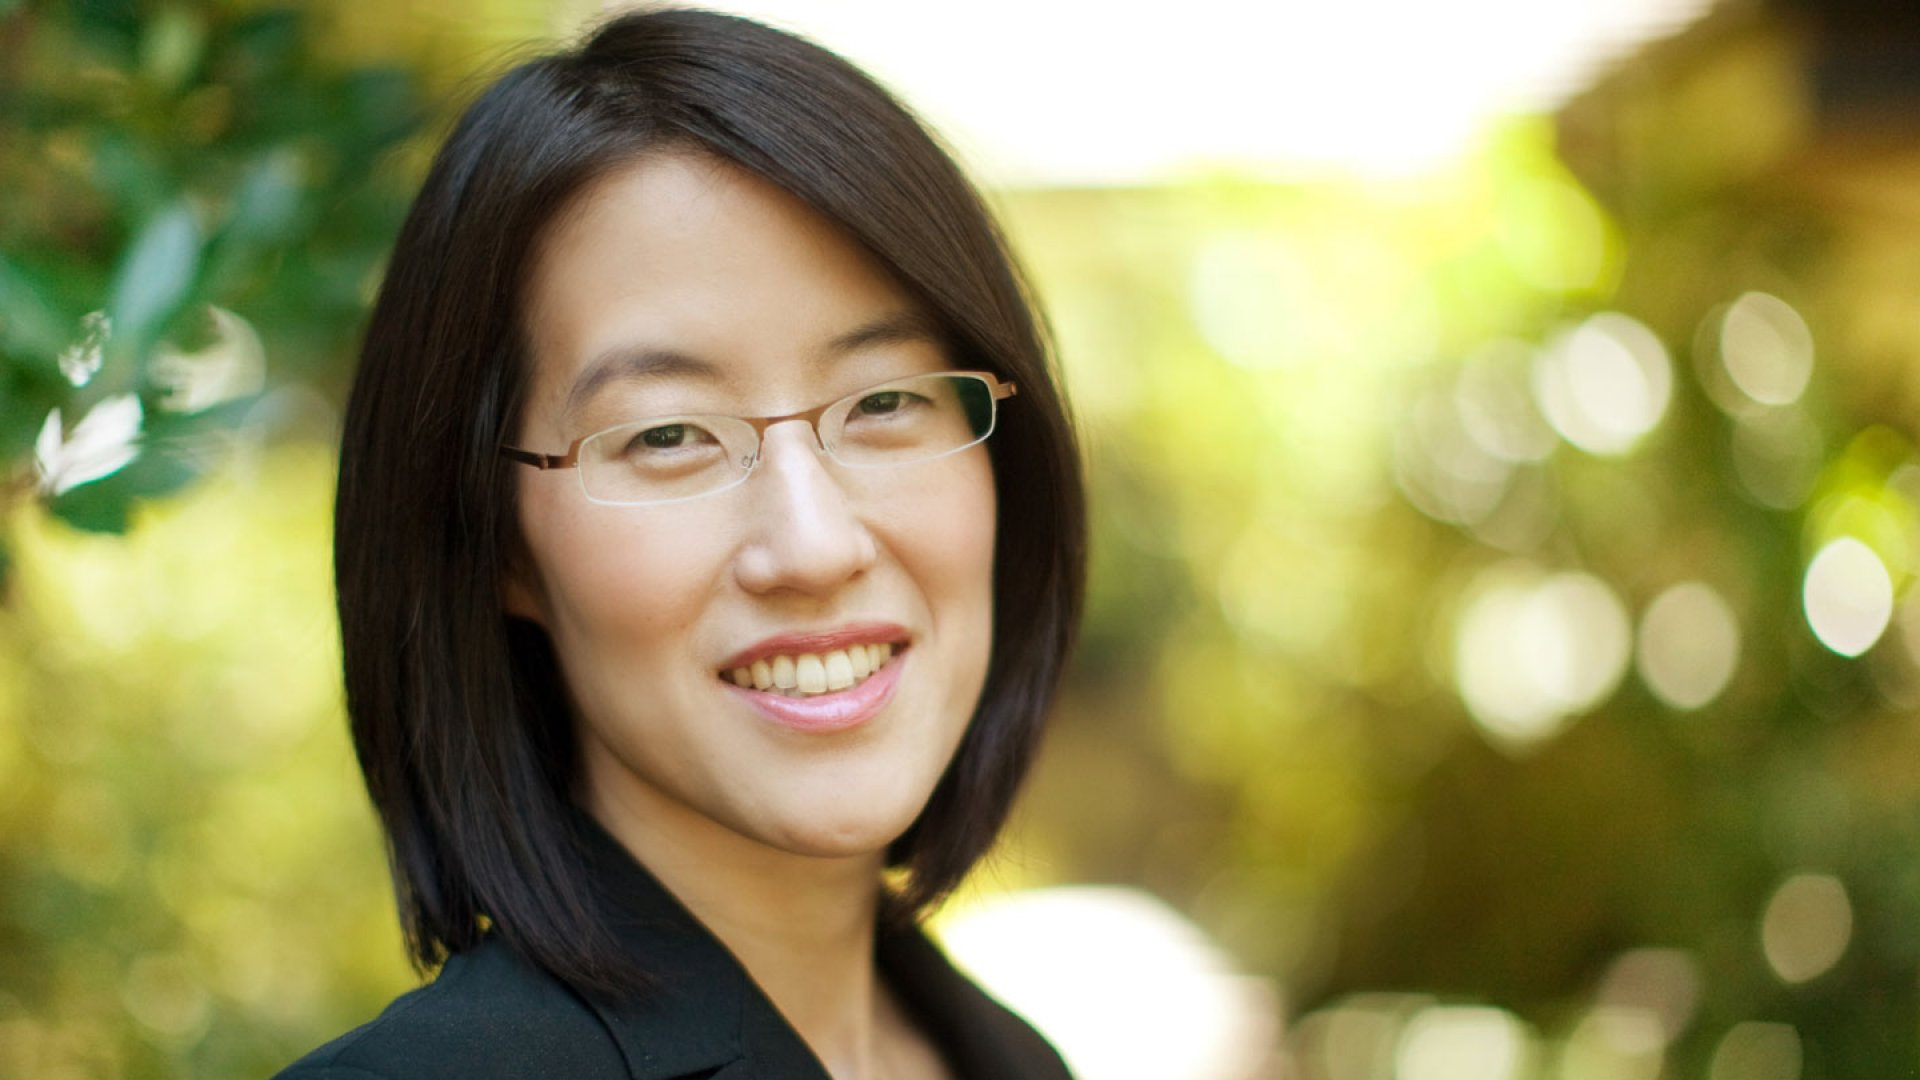 Ellen Pao is suing renowned venture capital firm Kleiner Perkins Caufield & Byers for gender discrimination and retaliation.